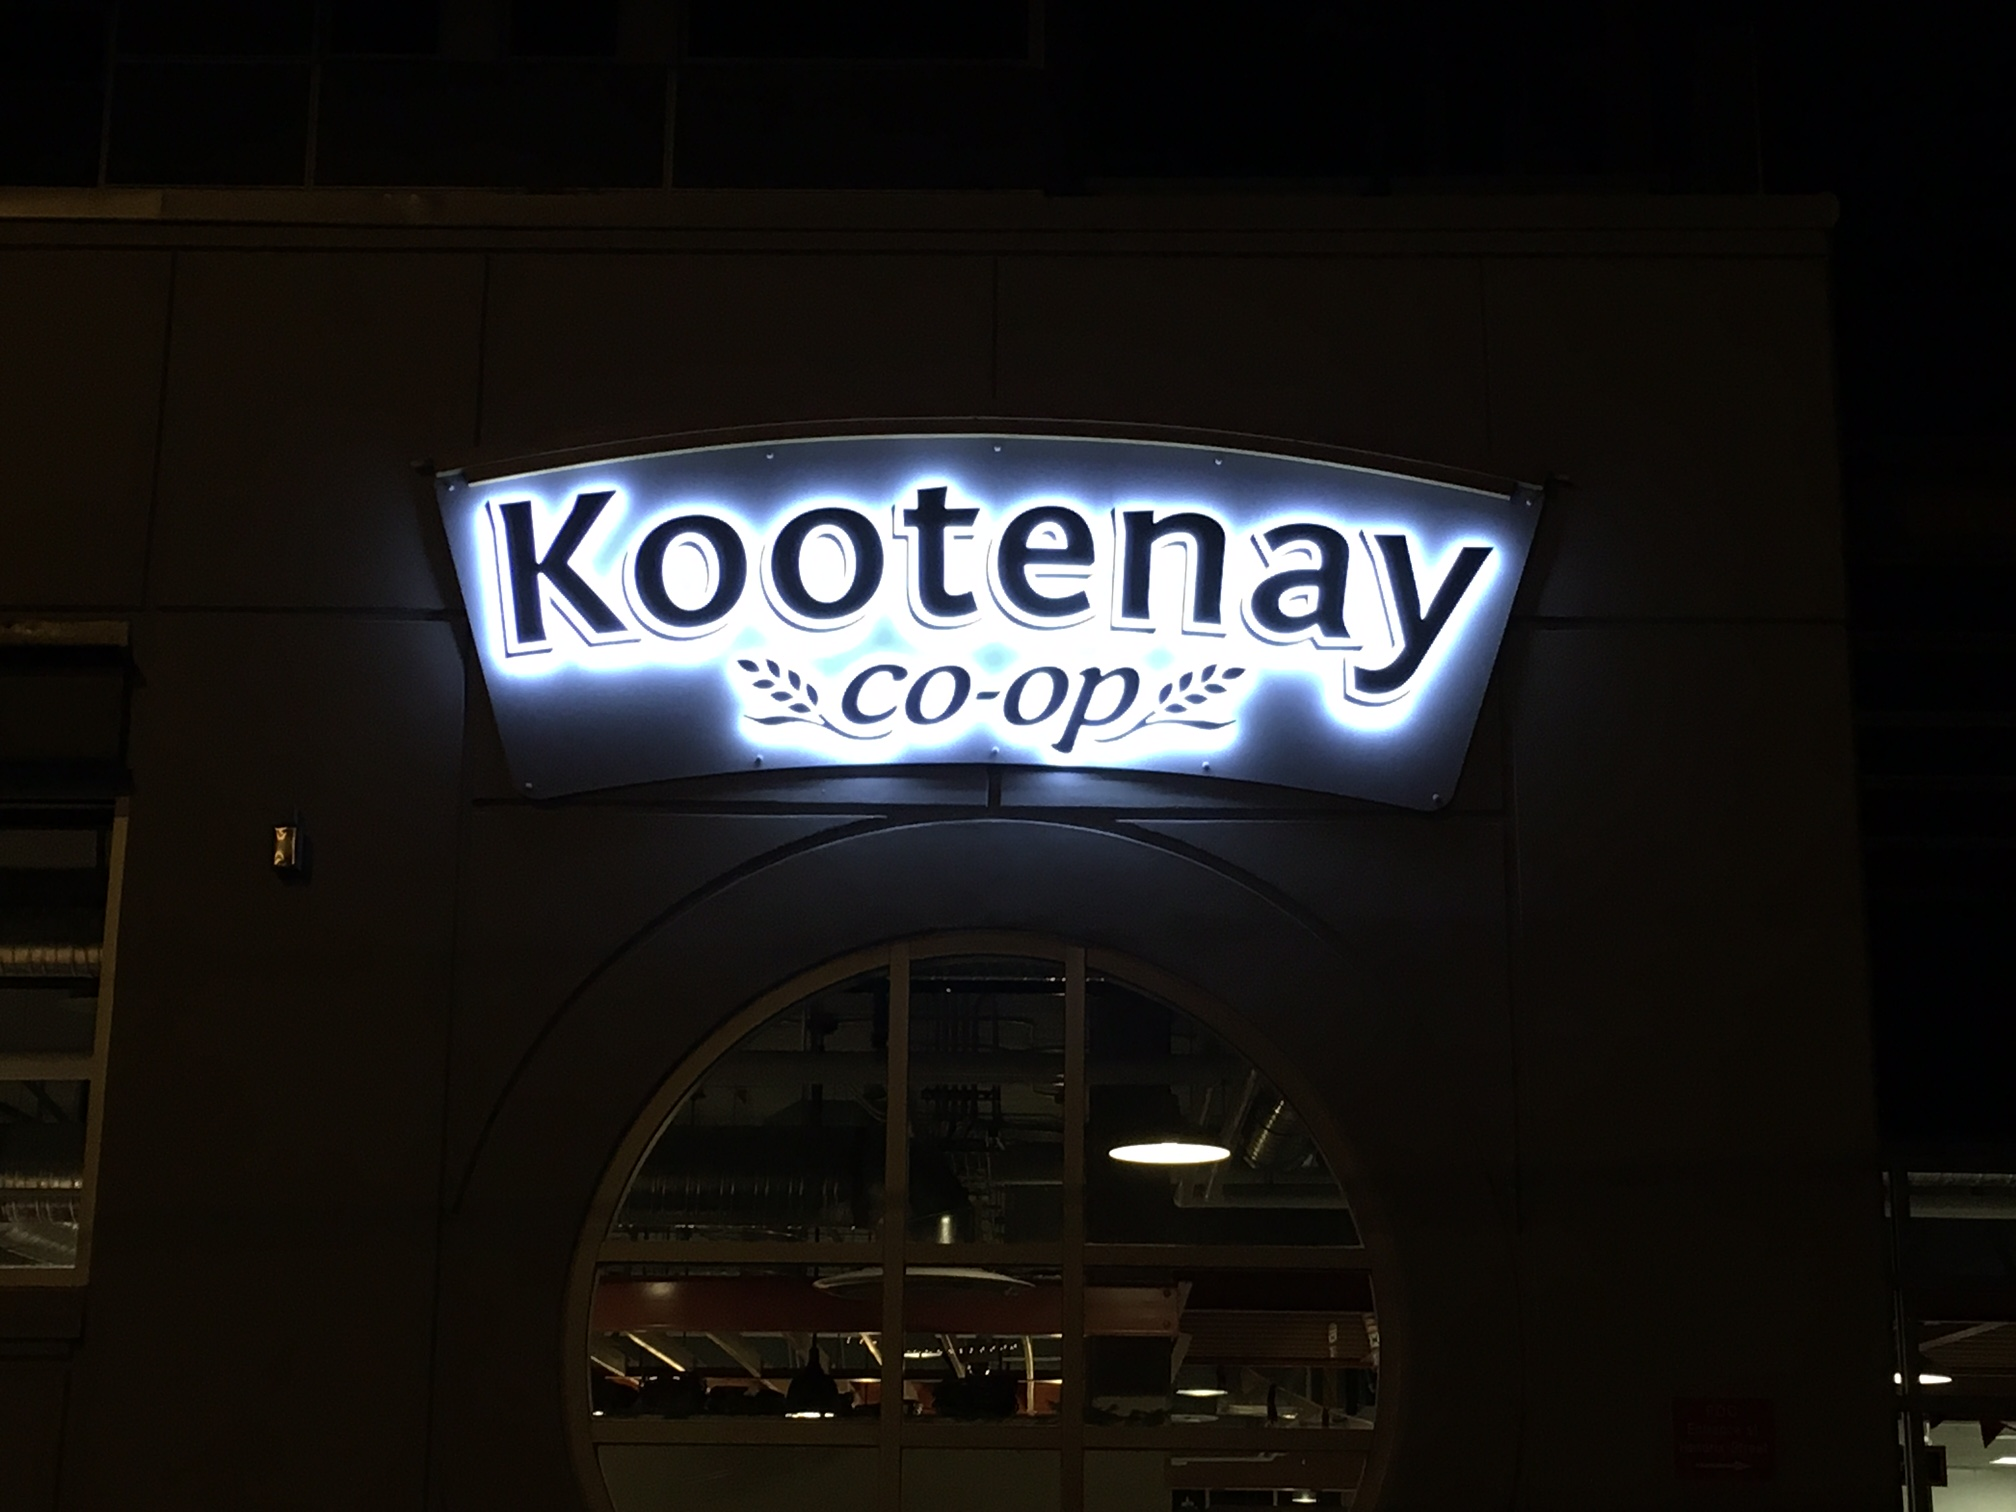 Kootenay Co-op Halo sign